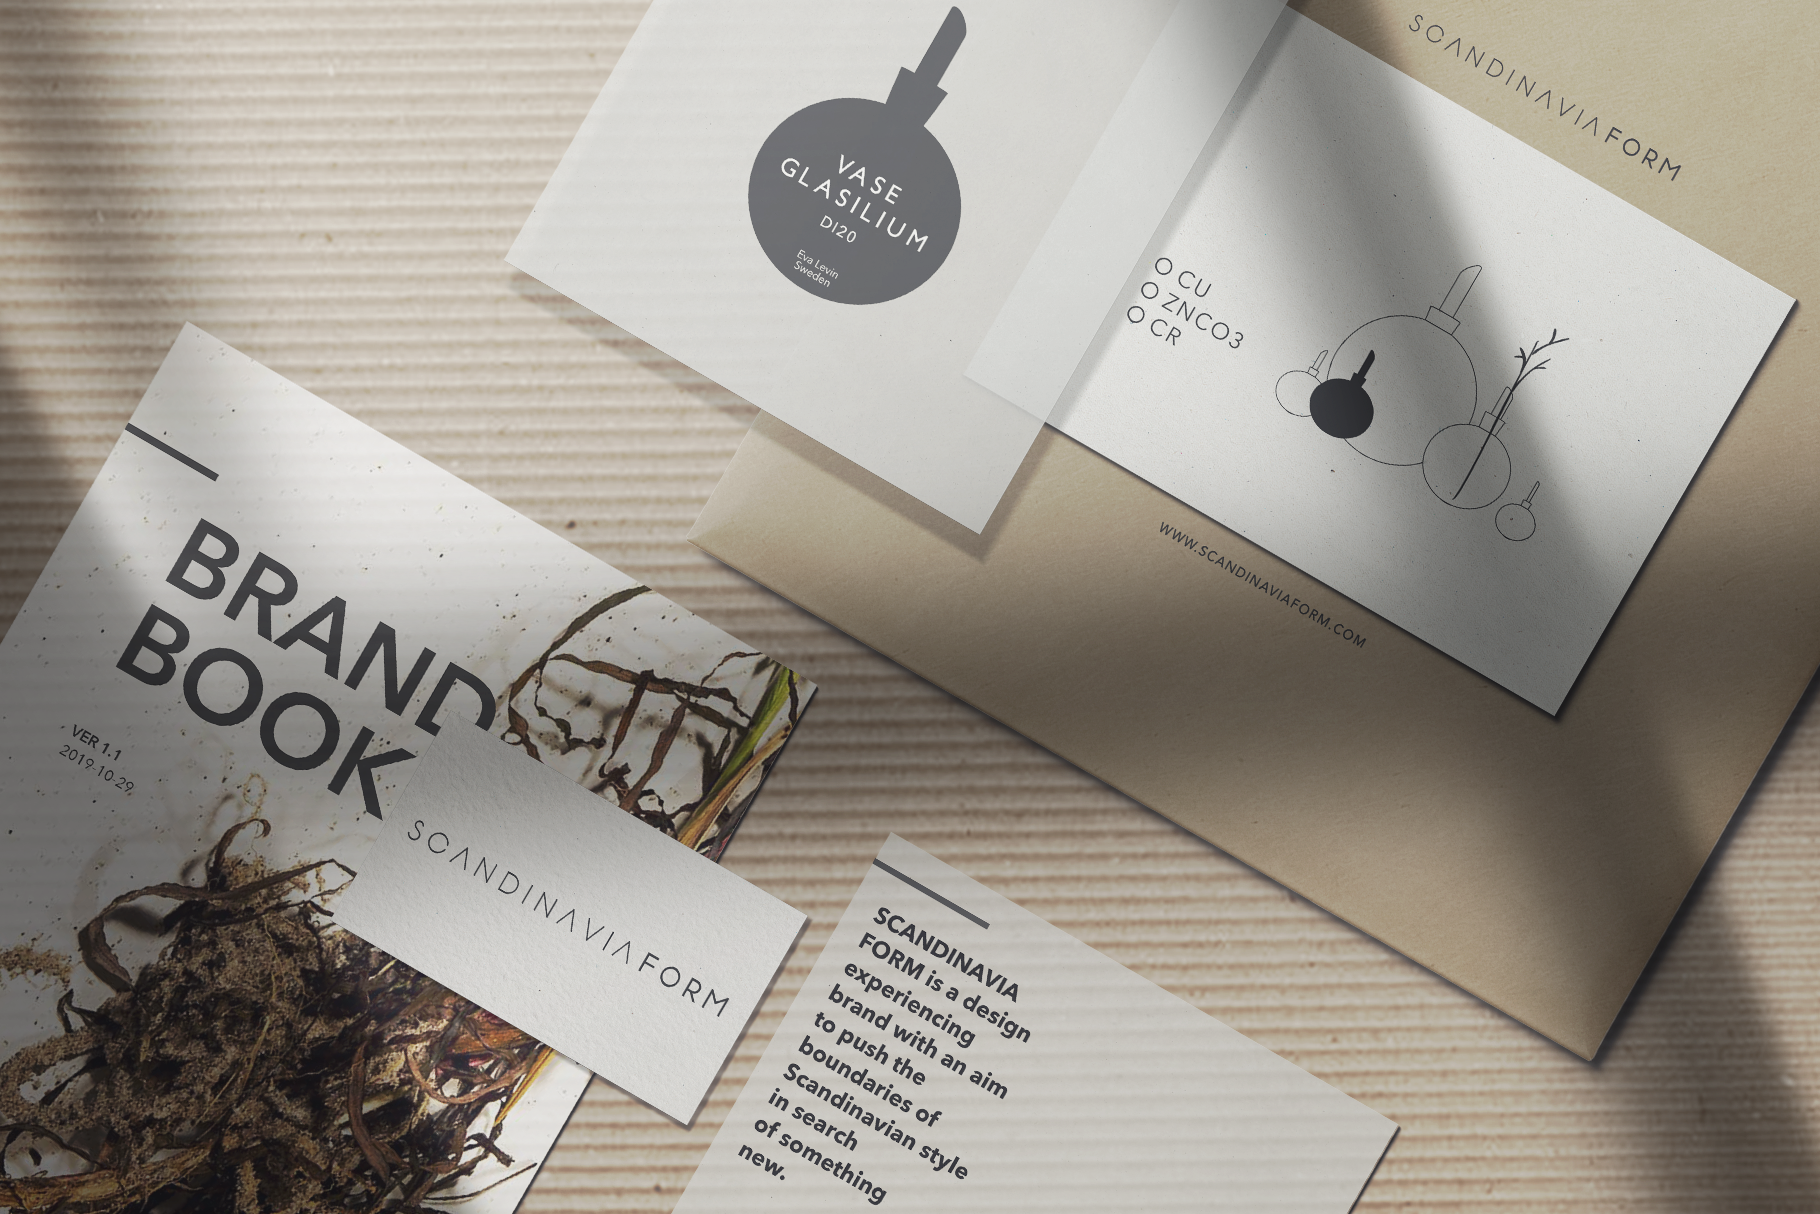 Scandinavia Form Brand work Collage with Logo illustrations in earthly colors